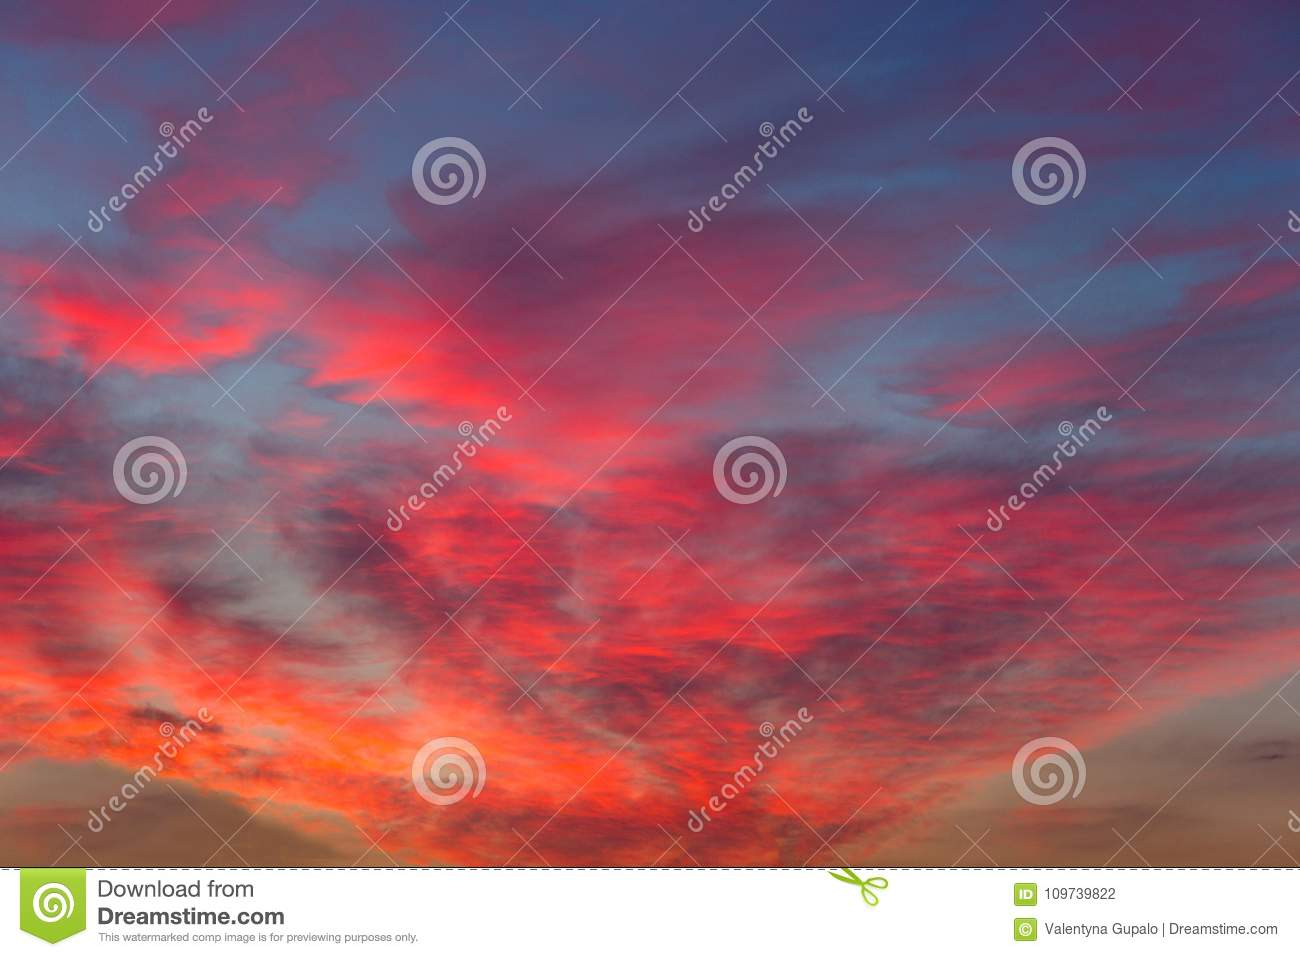 Pink purple sunset clouds on a blue sky. Colorfull abstract background